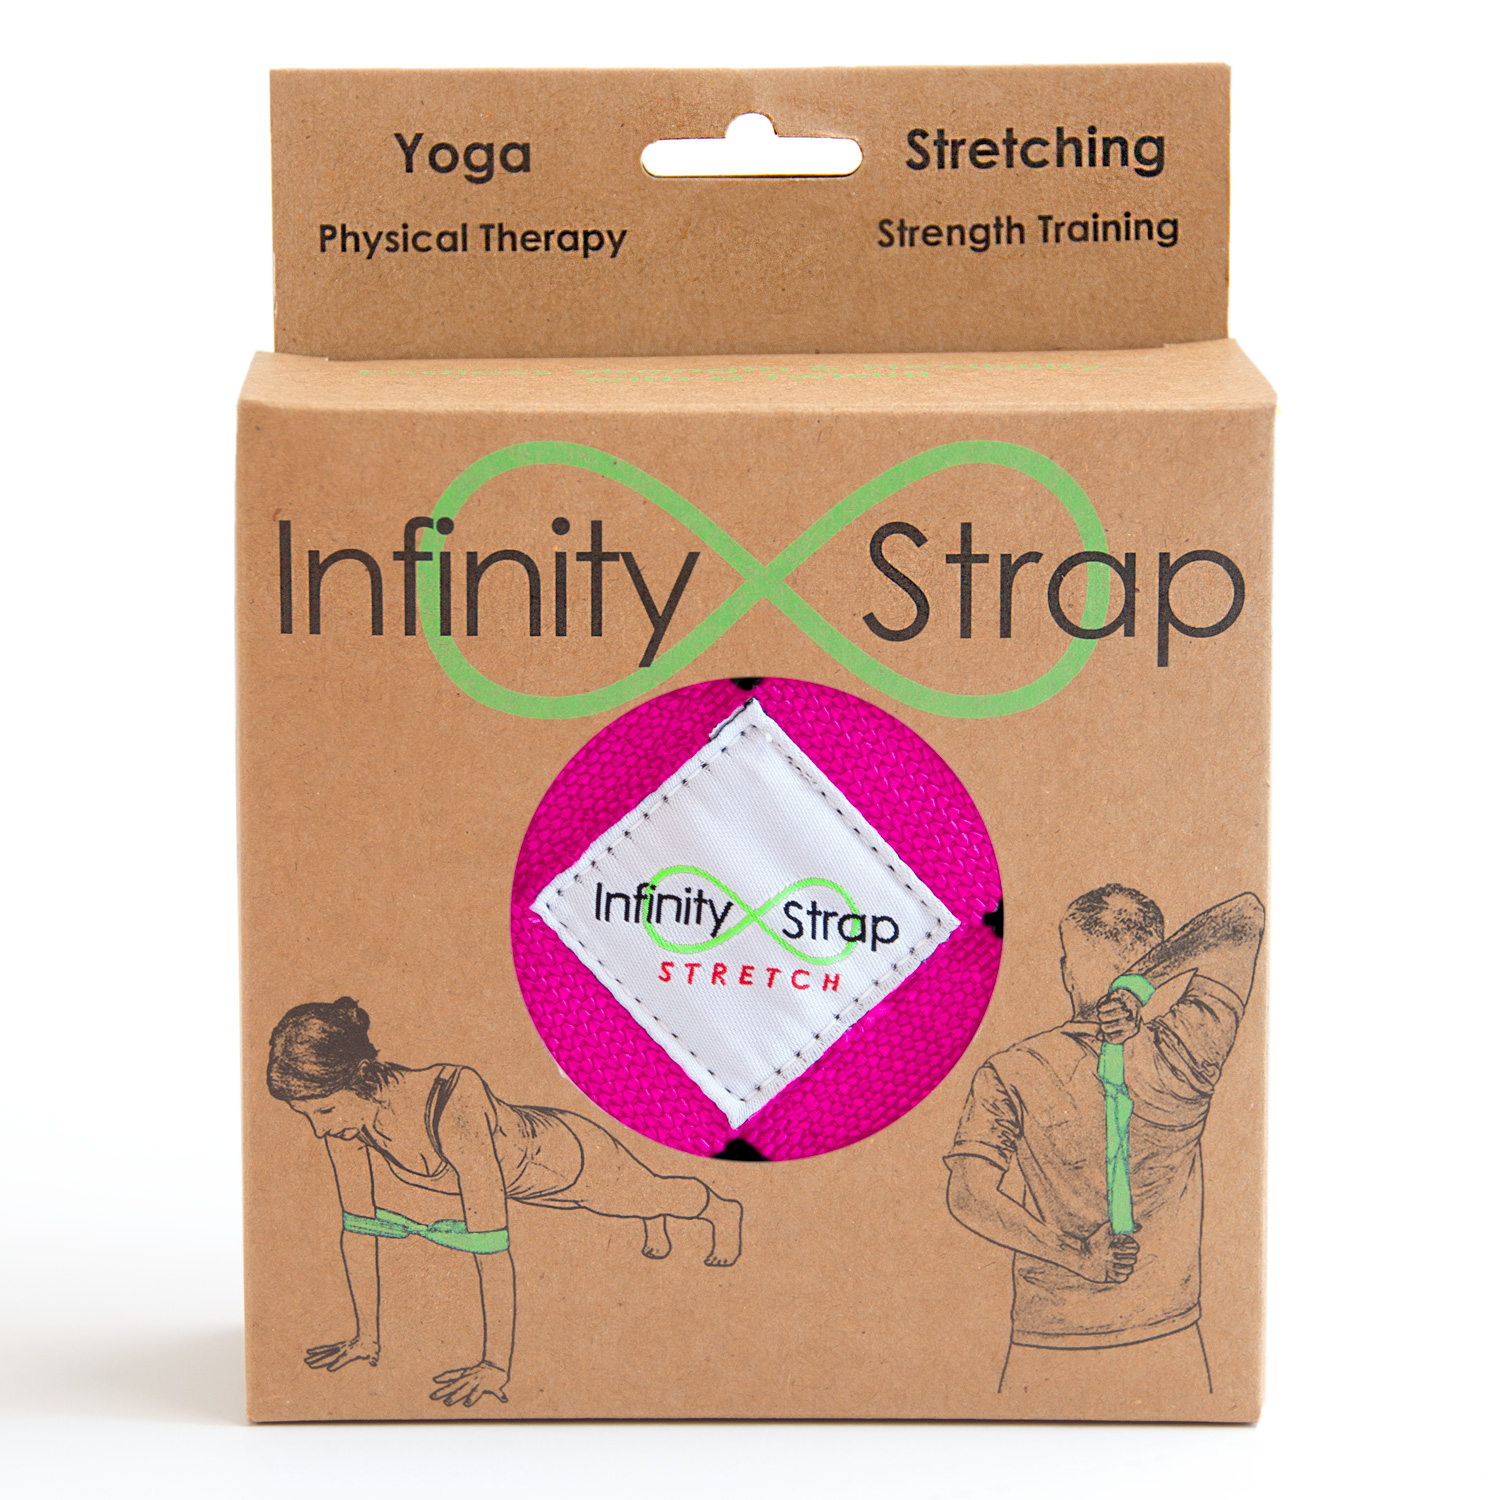 Every Infinity Strap is individually packaged.